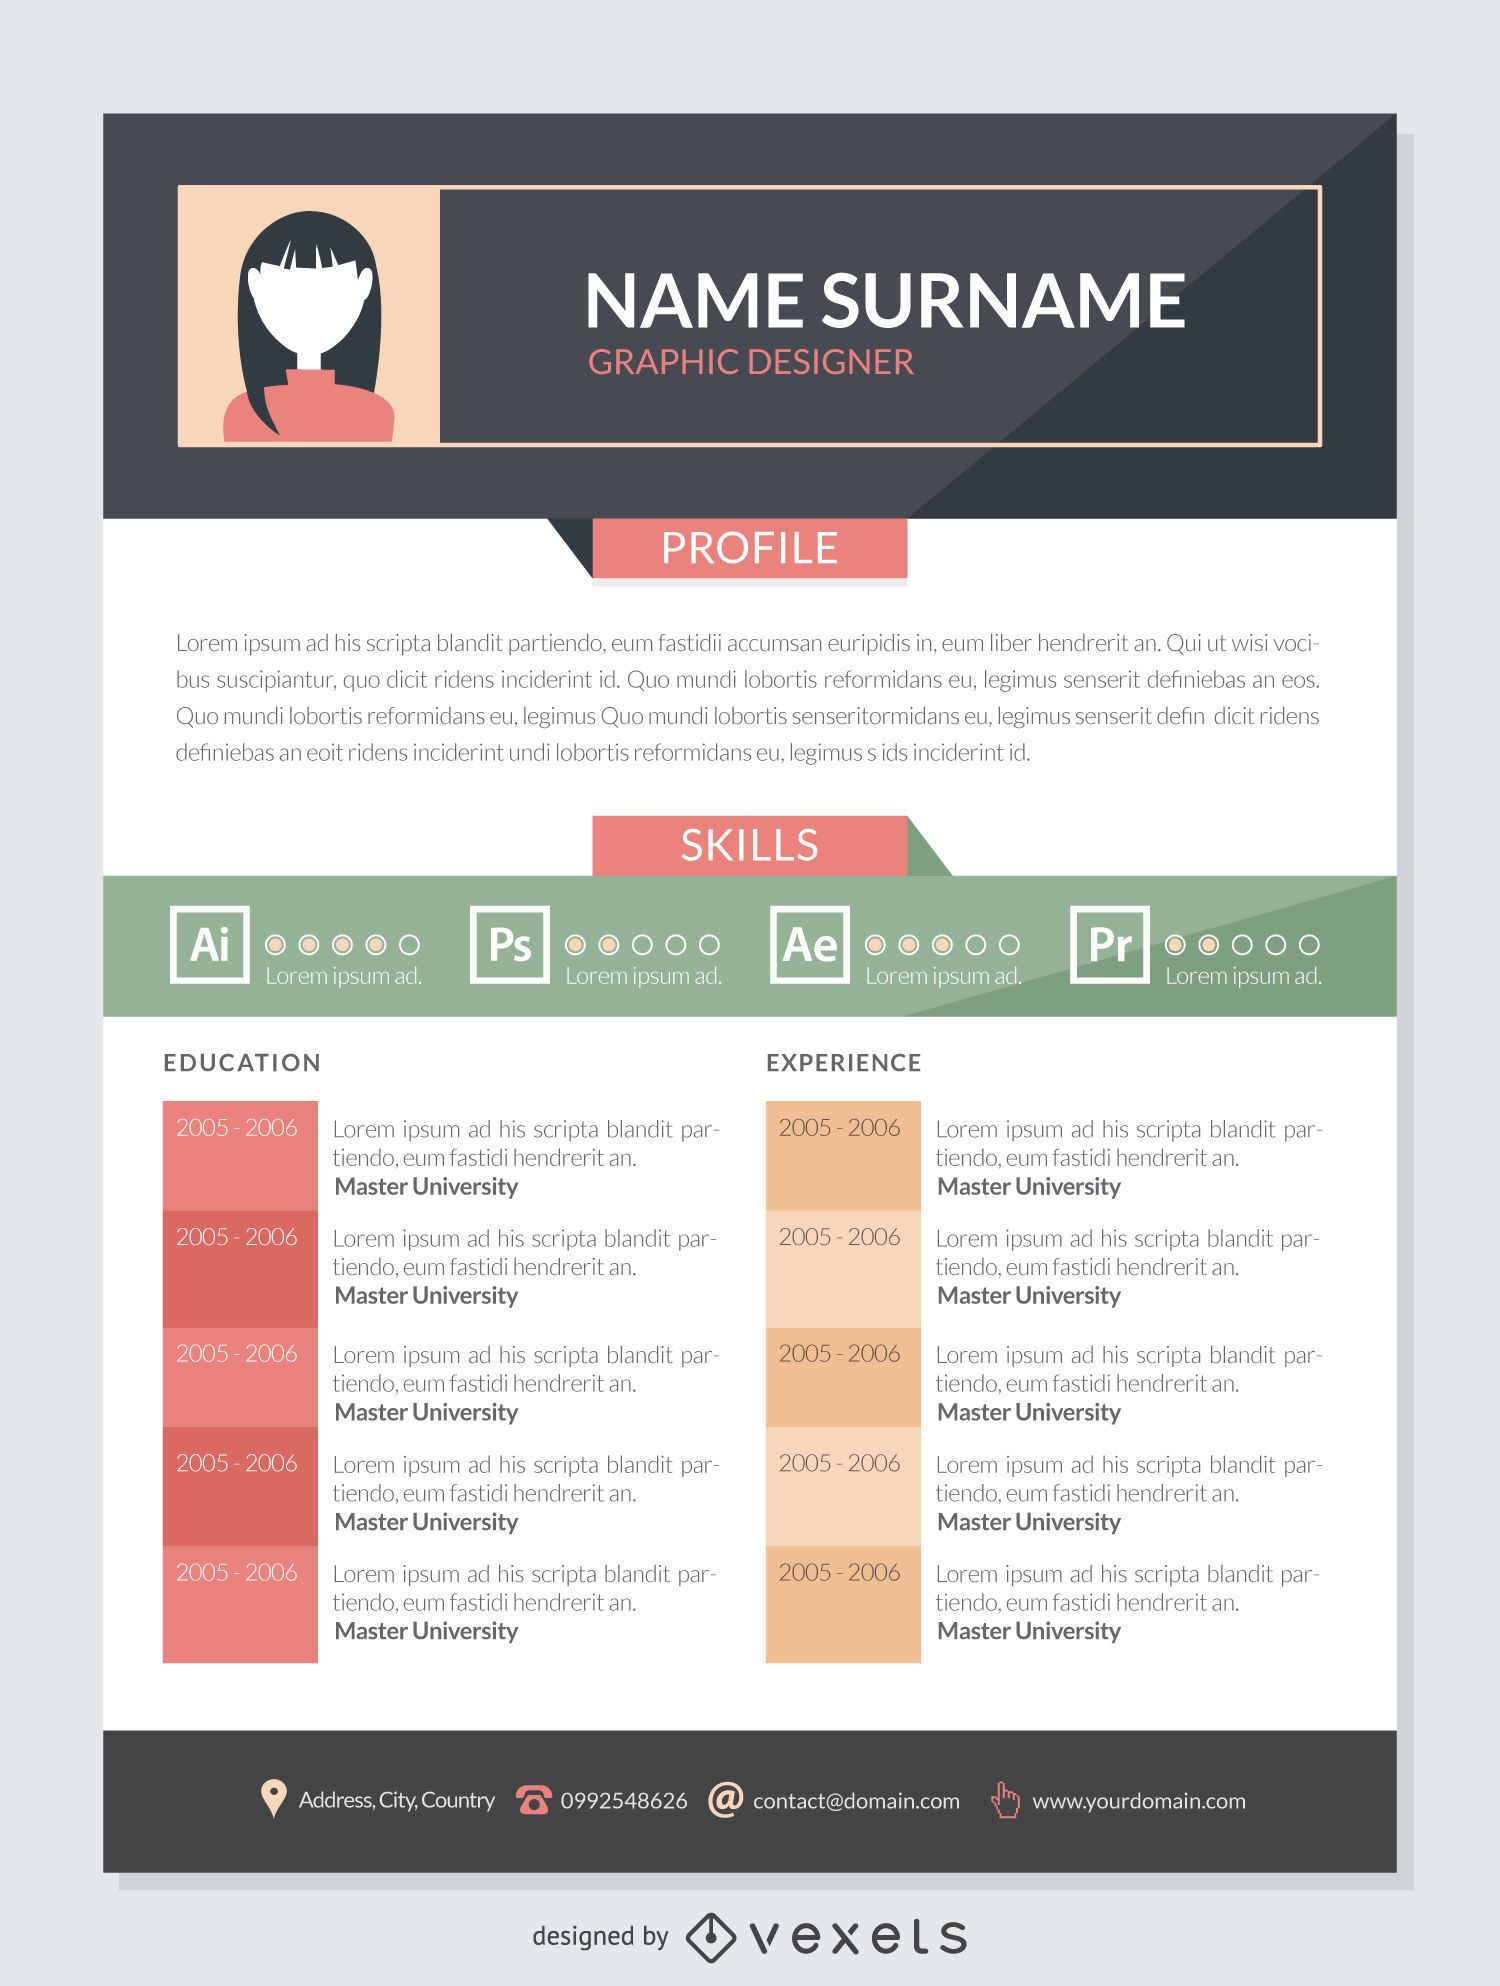 Exceptional Graphic Designer Resume Mockup Template. Download Large Image 1450x1920px.  License Image; User  Graphic Artist Resume